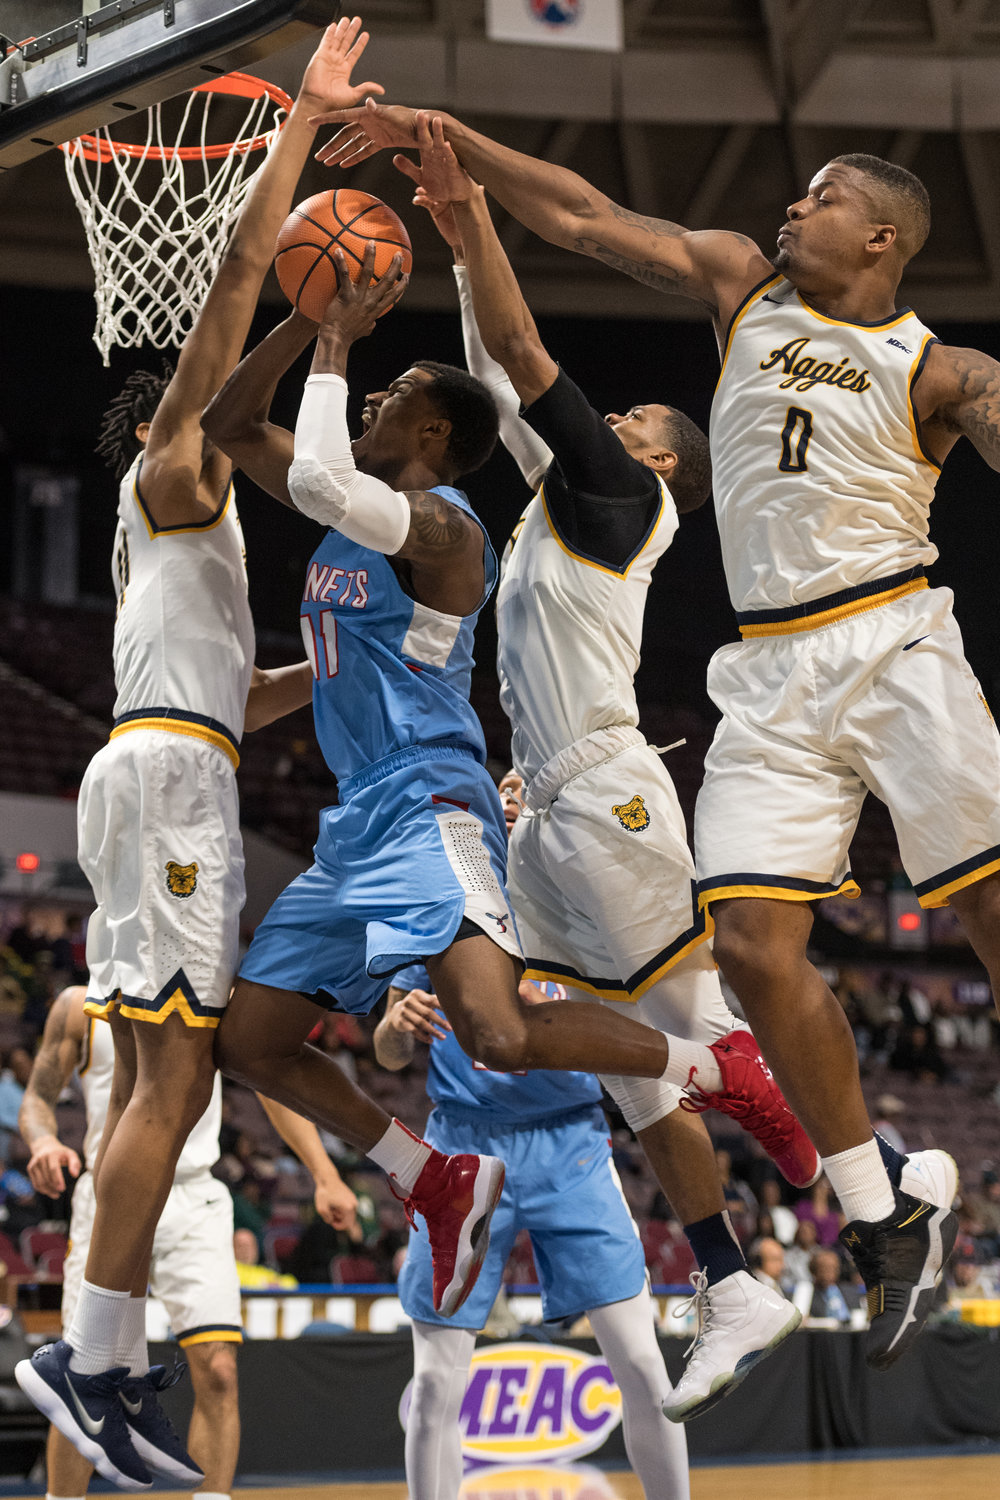 Delaware State Hornets guard Jonathan Walker (11) takes a shot under pressure from North Carolina A&T Aggies center D'Andre Johnson (11) guard Devonte Boykins (3) and forward Davaris McGowens (0) during the Monday, March 5, 2018 game held at Norfolk Scope Arena. North Carolina A&T defeated Delaware State 62 to 61 in overtime.